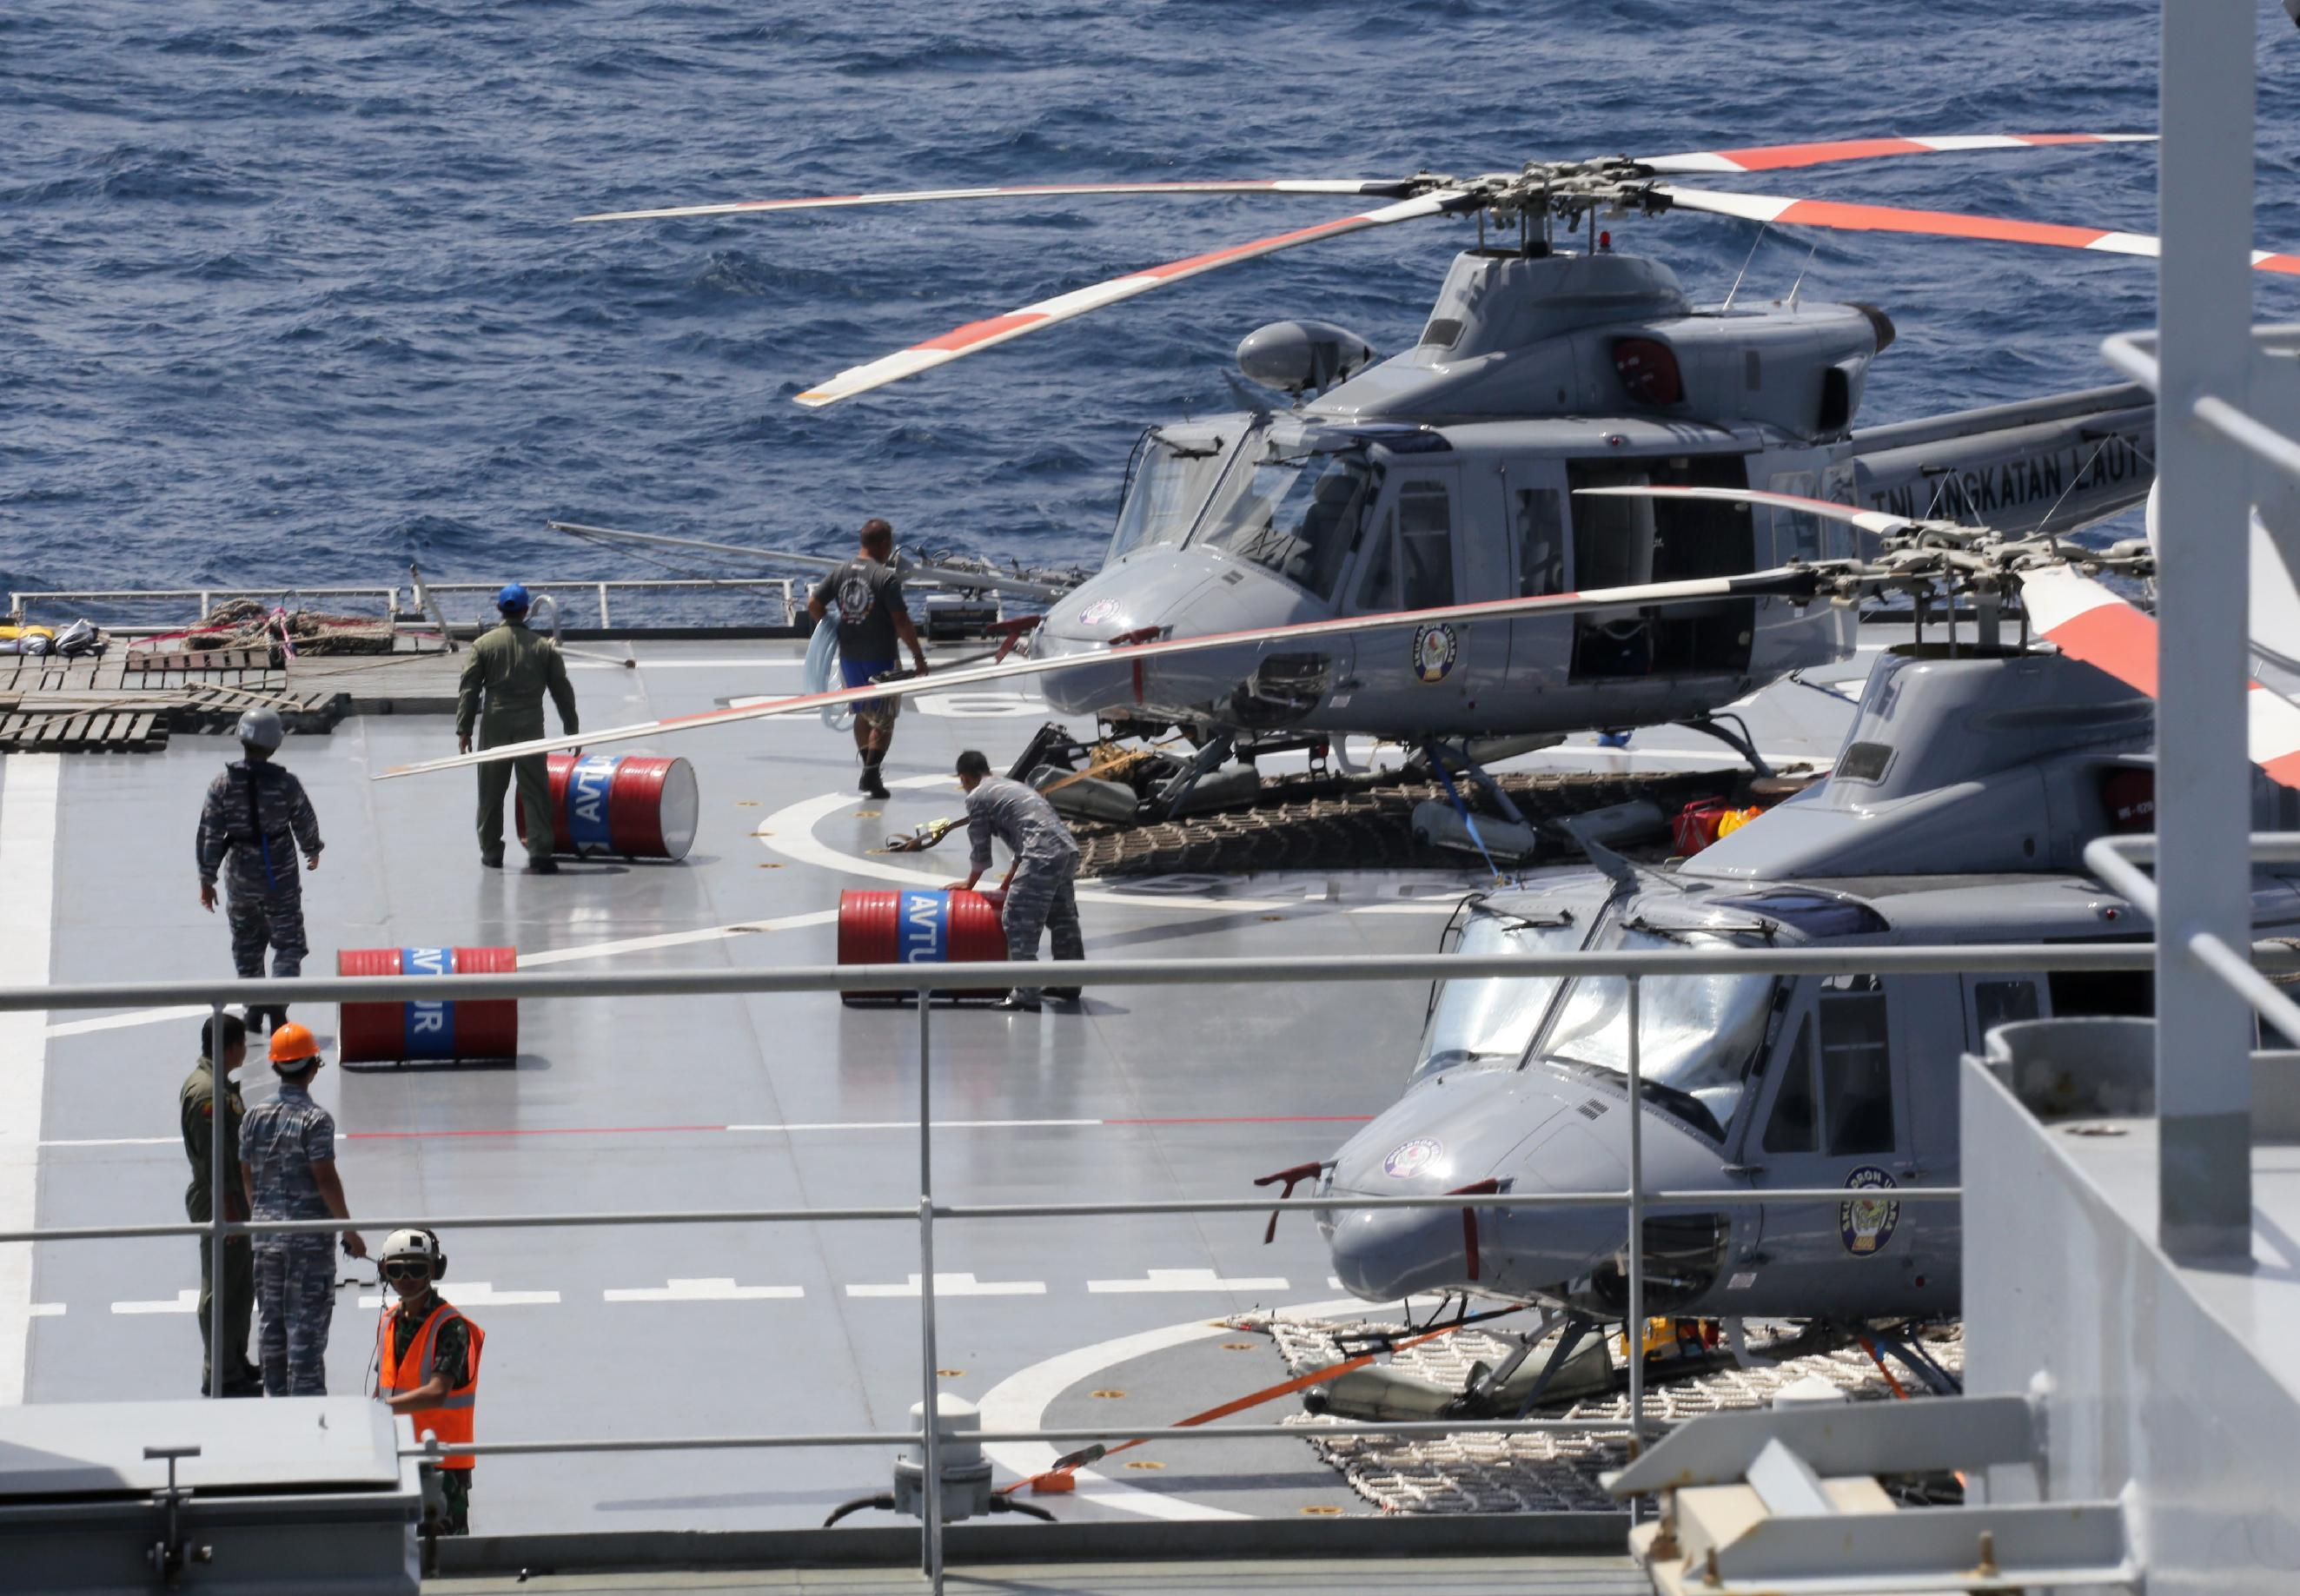 Indonesian military halts recovery efforts for AirAsia plane